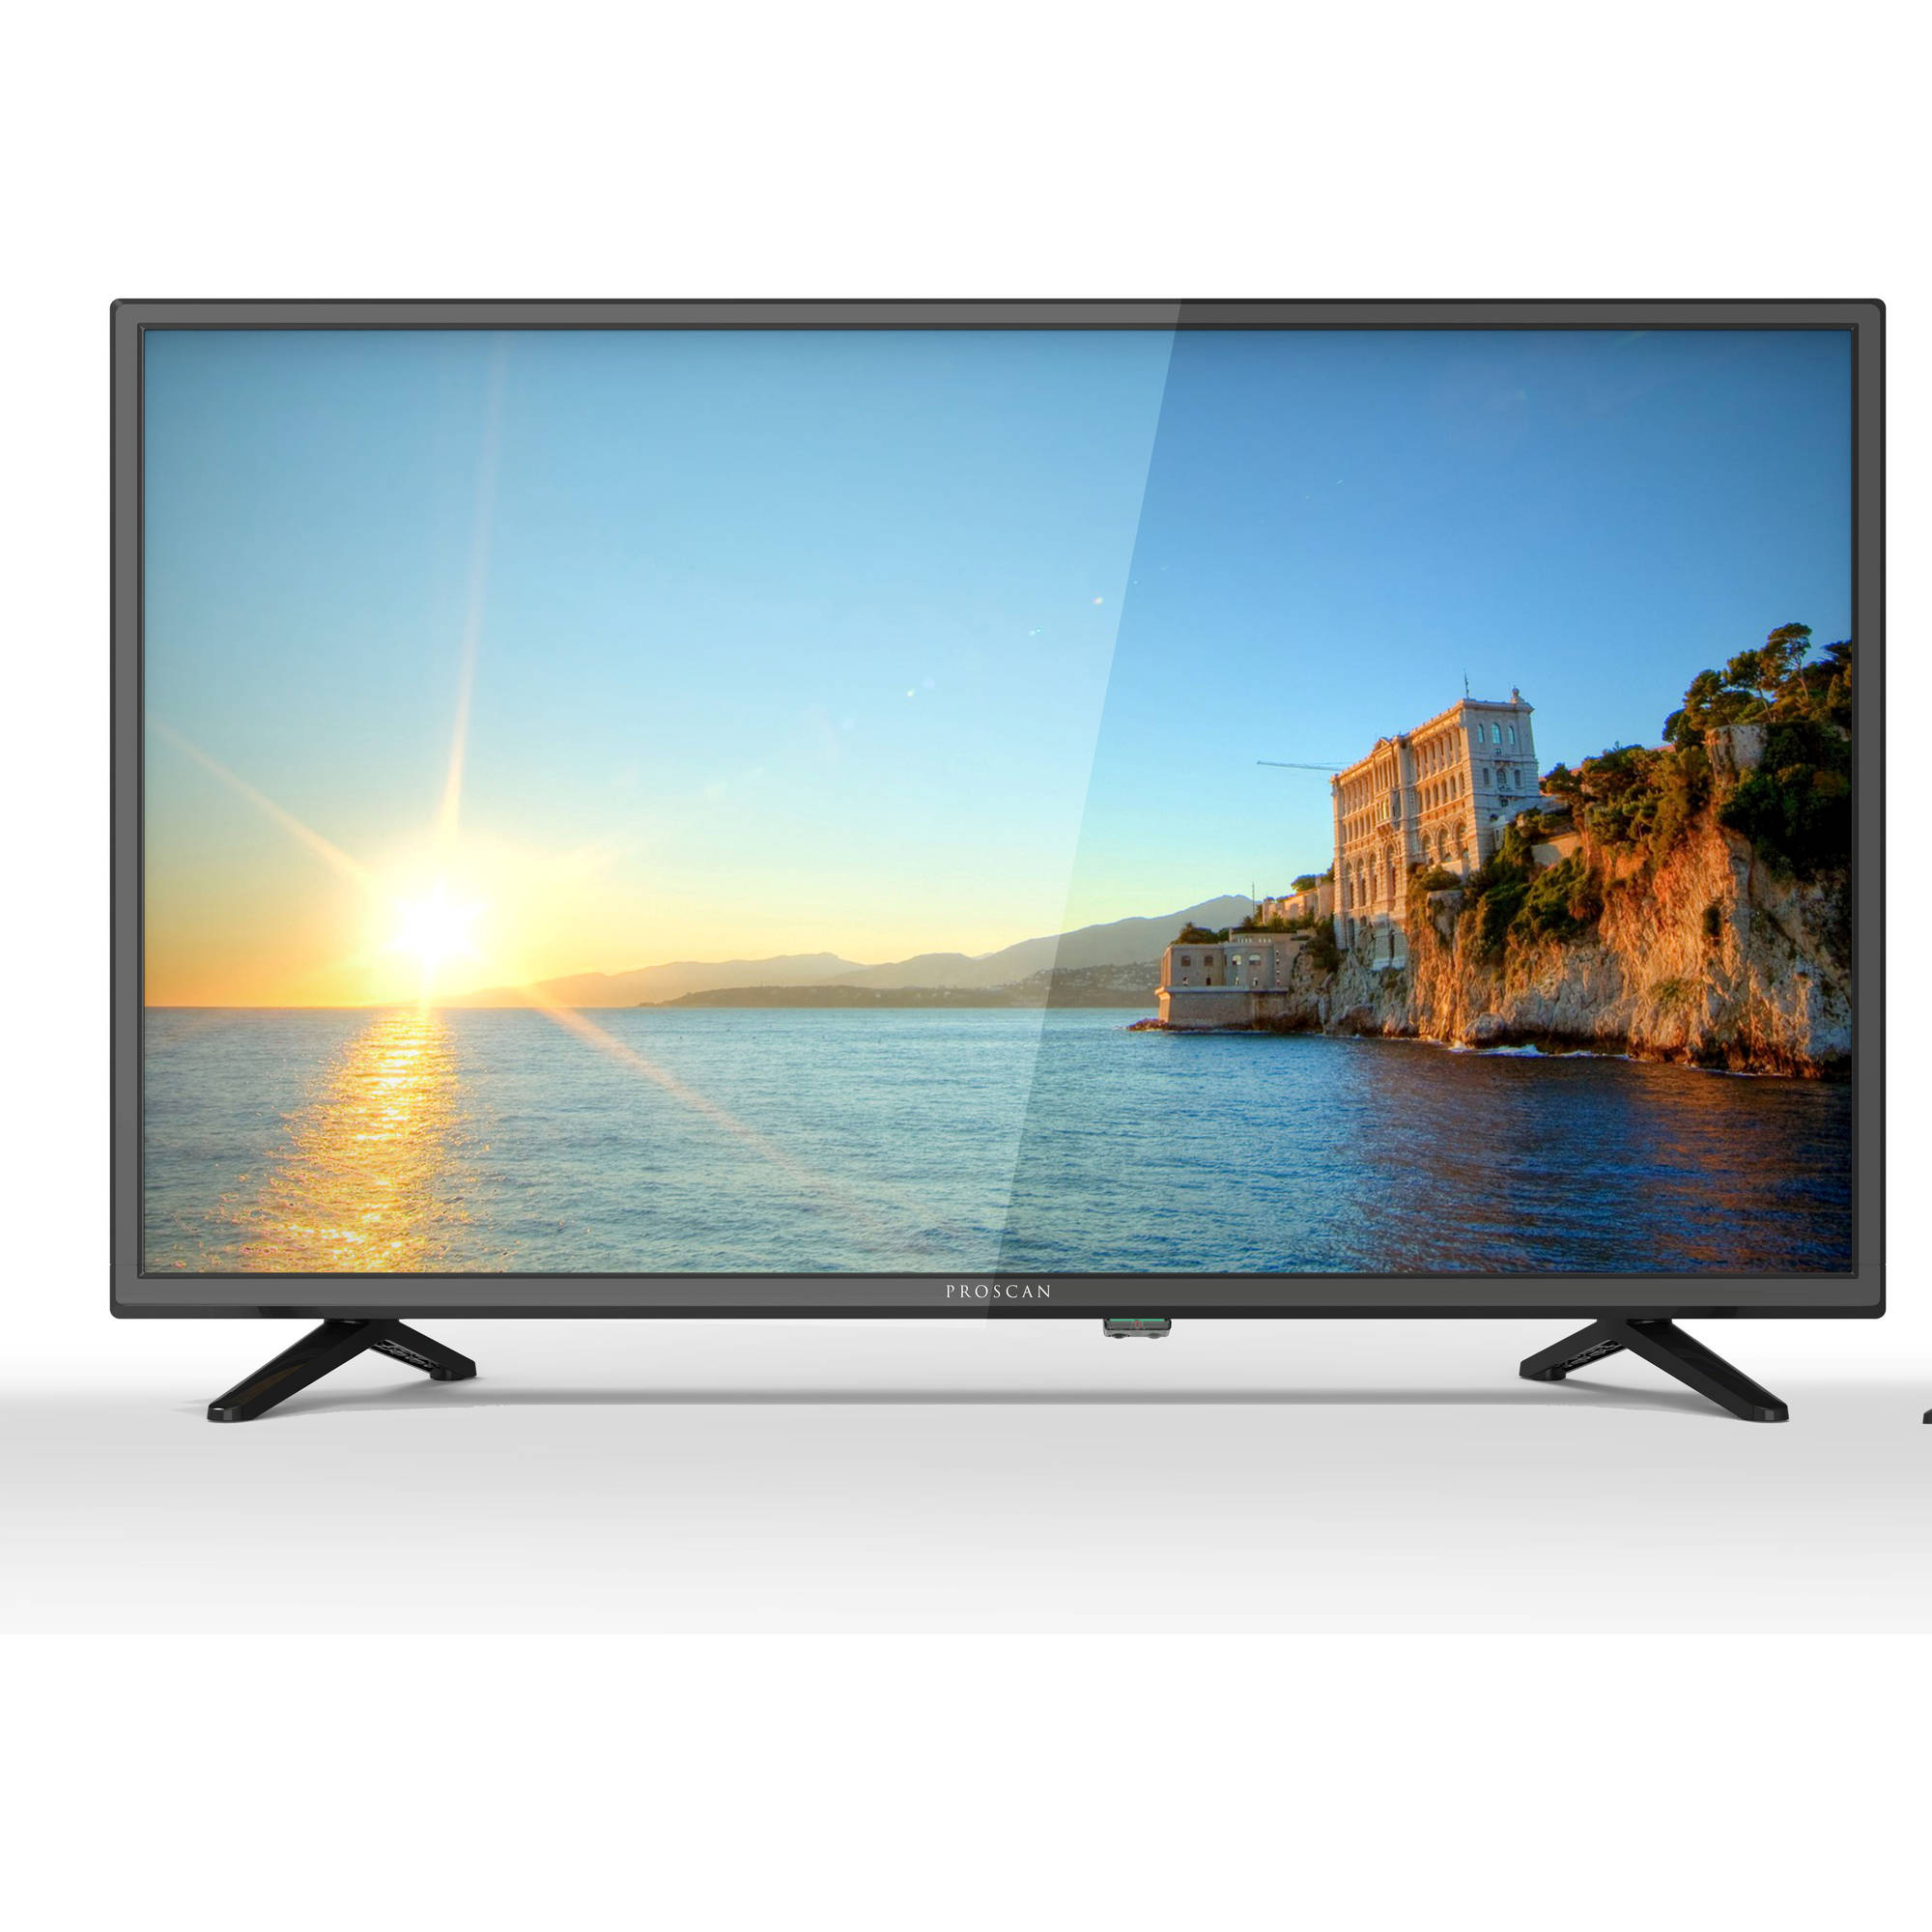 "ProScan PLDED3996A 39"" 720p LED-LCD HDTV"